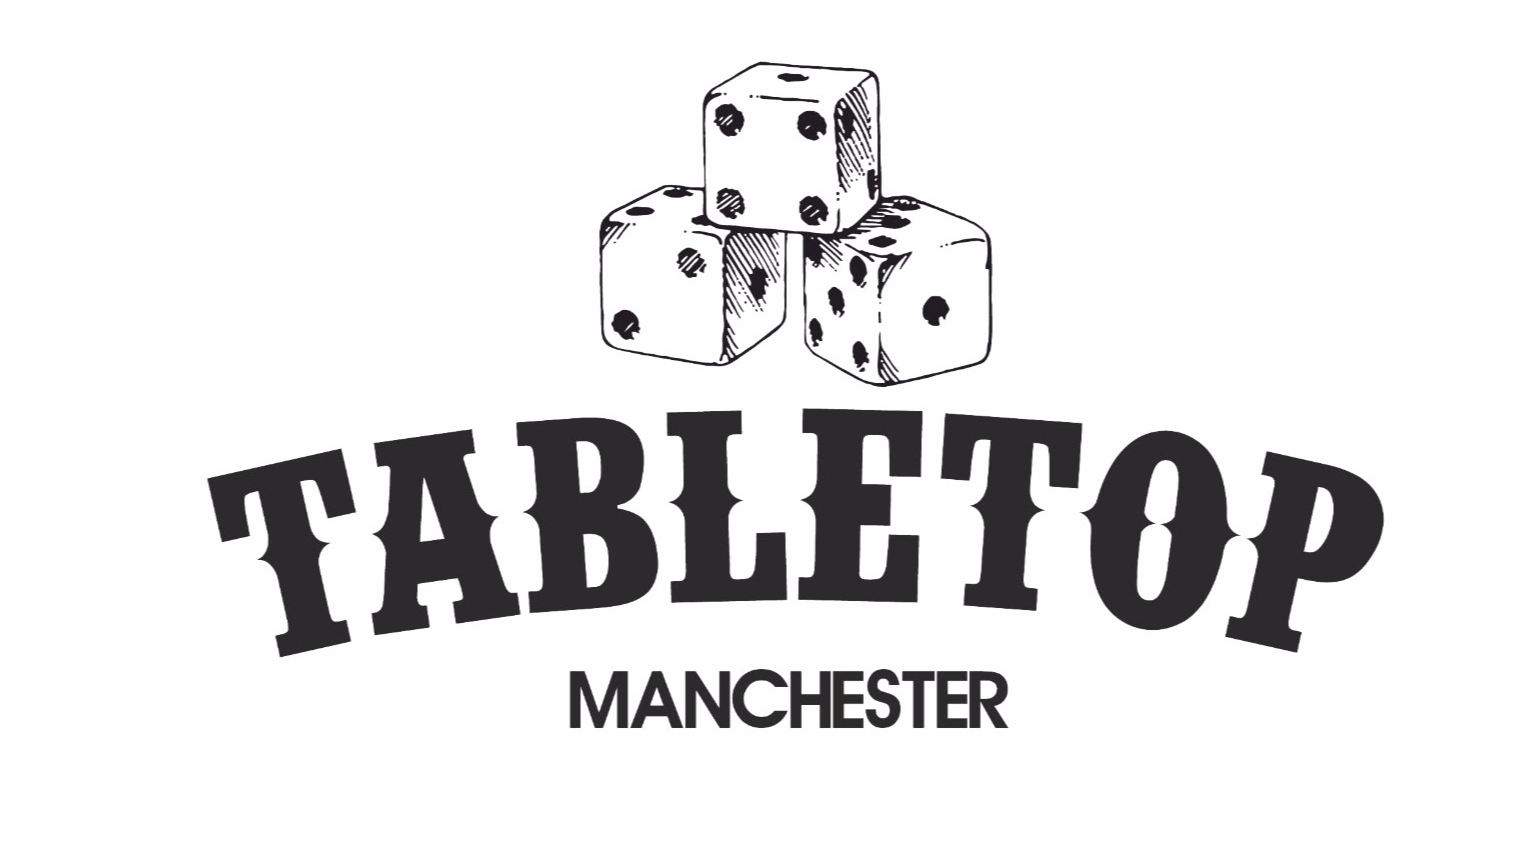 Tabletop Manchester